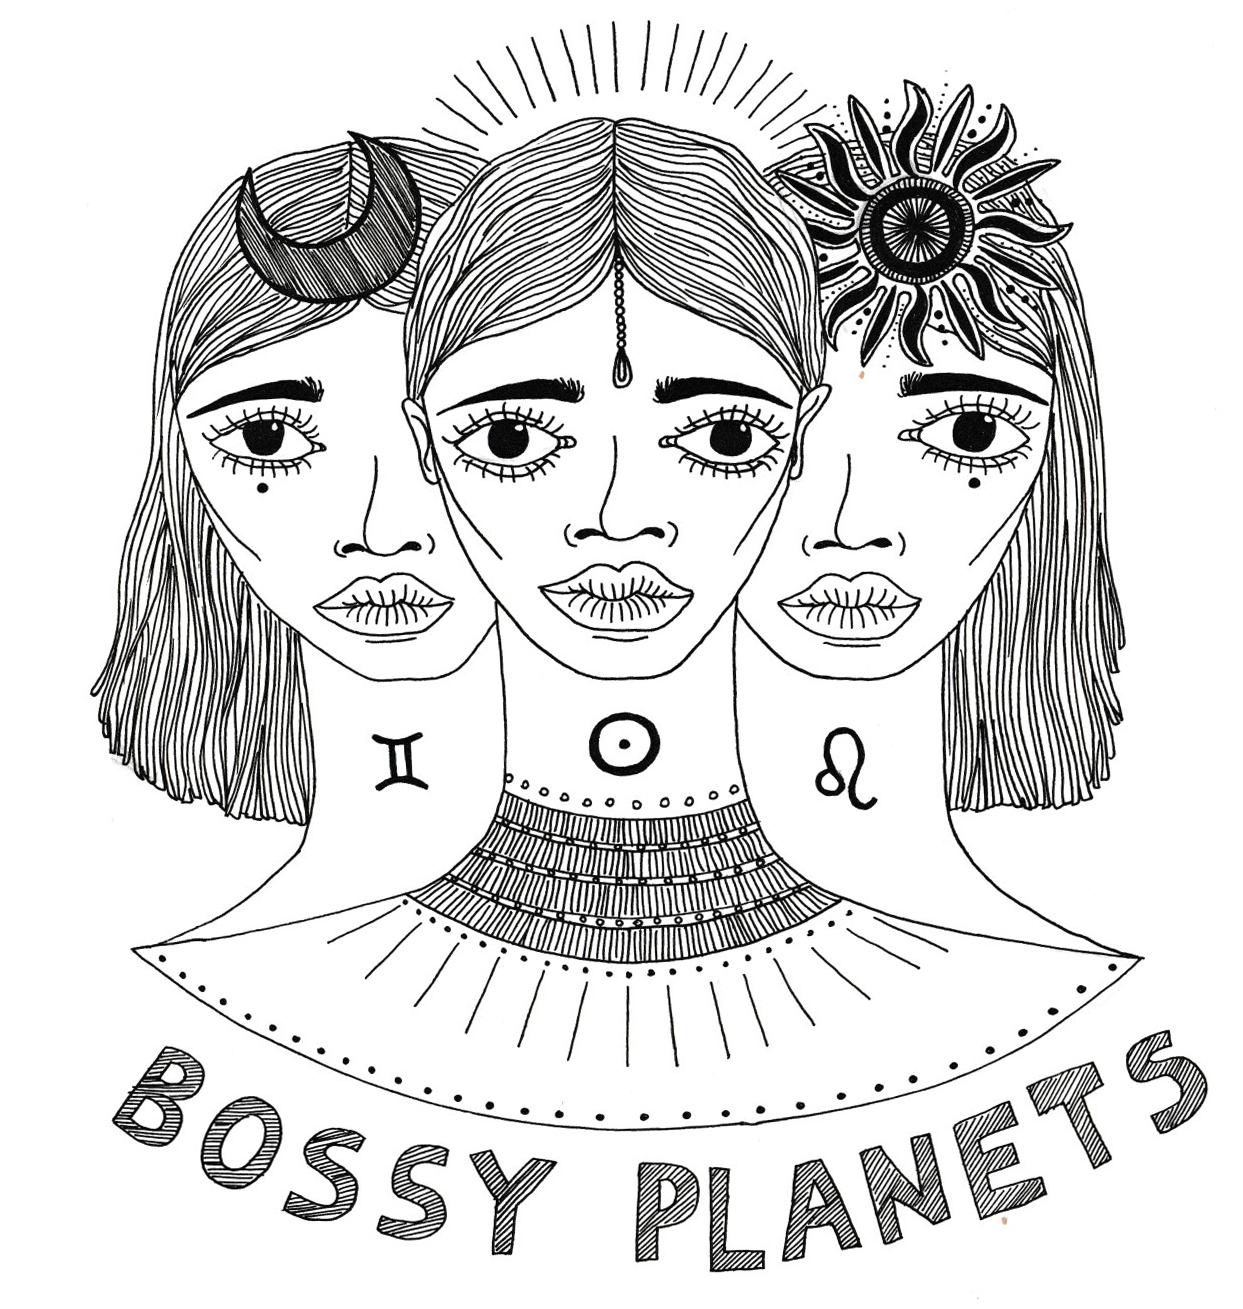 Bossy Planets